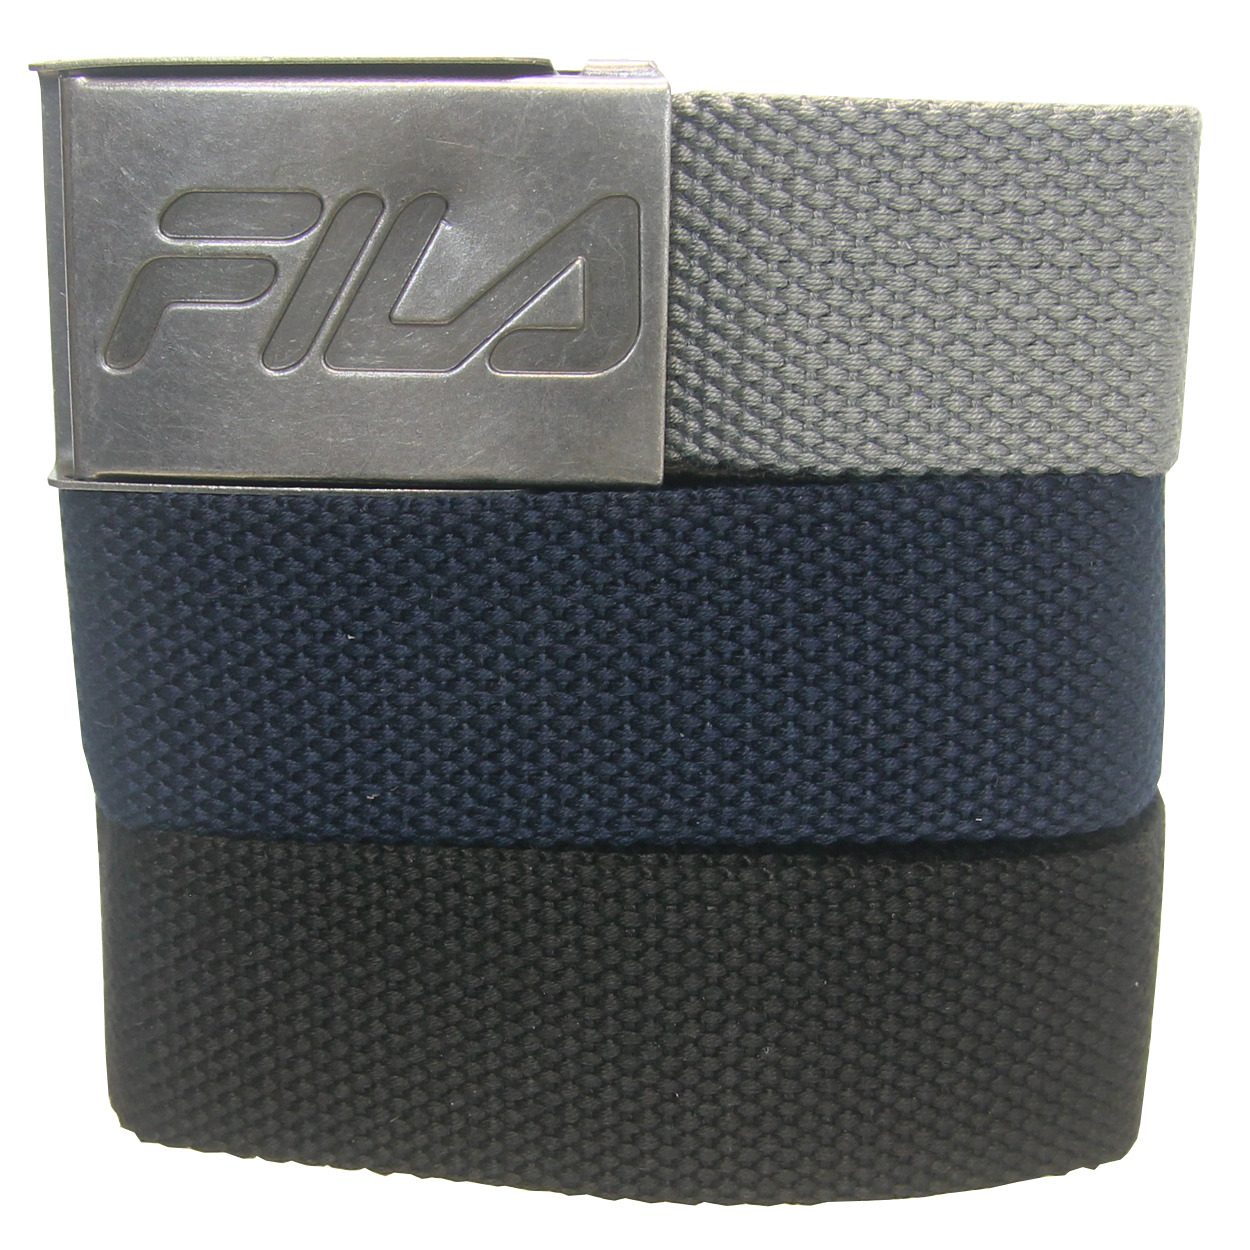 Fila Golf 3-In-1 Web Belt, Cut To Fit Up To Size 42